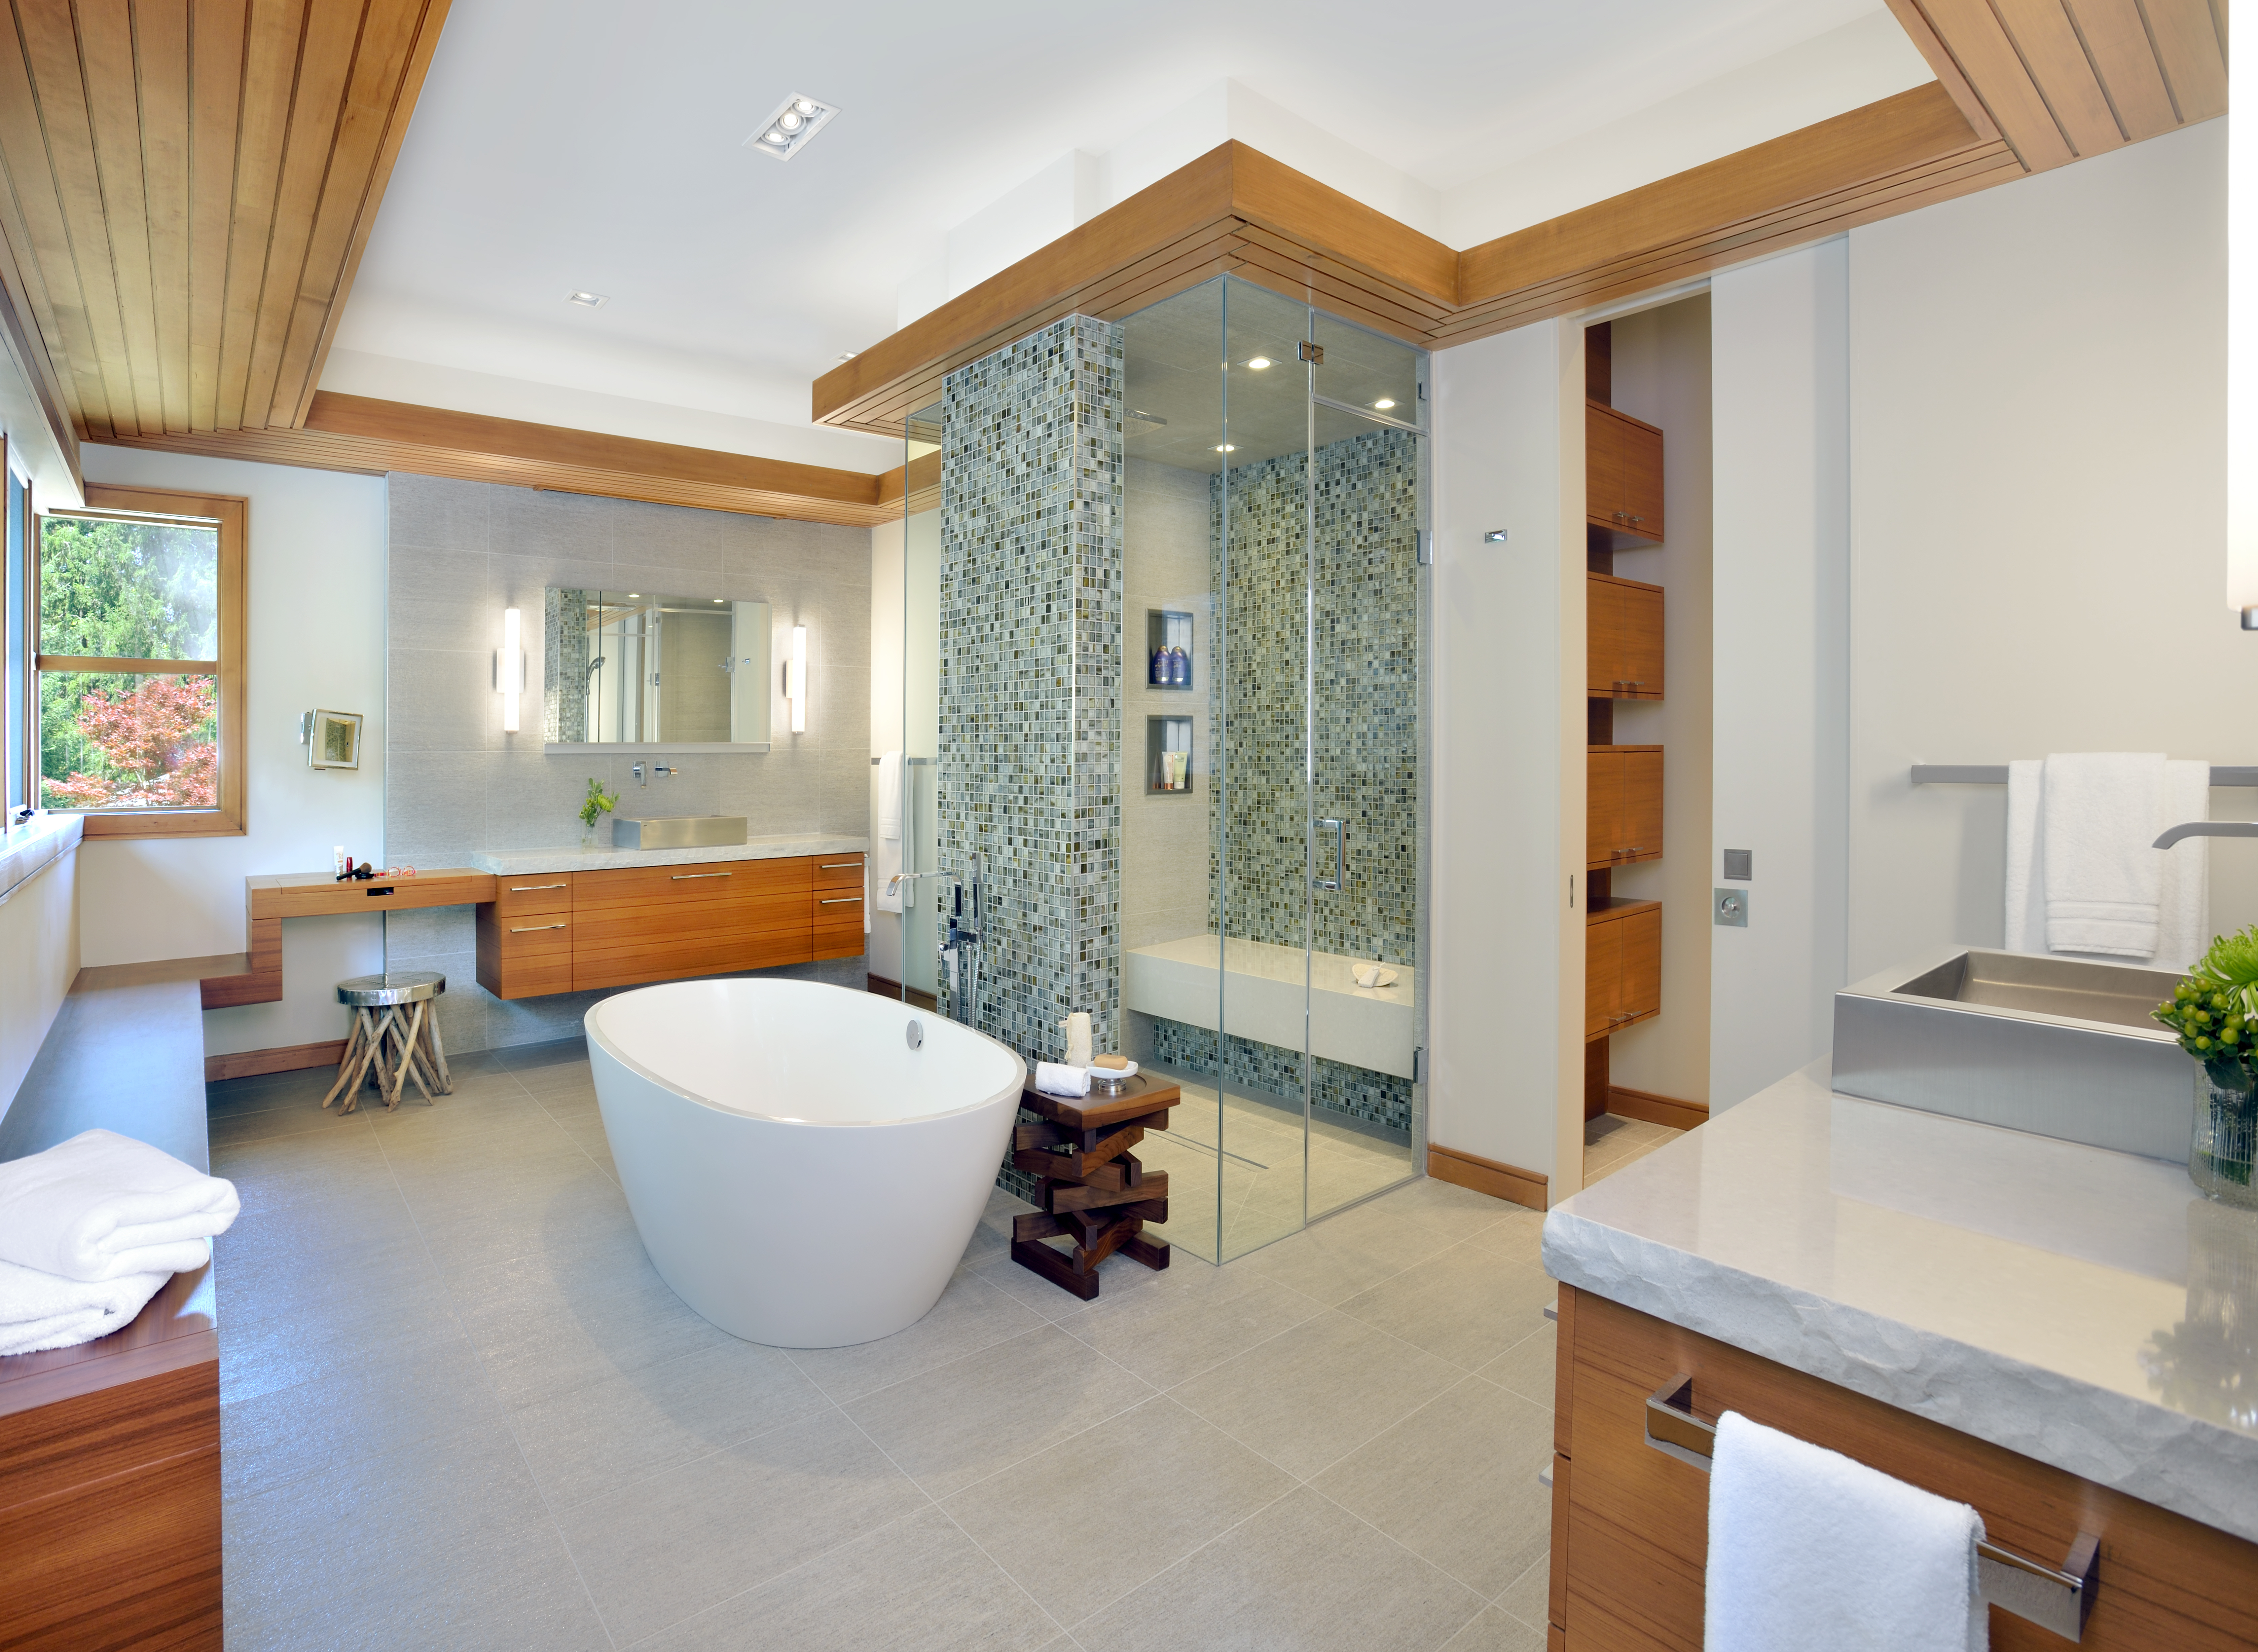 Contemporary Bathroom Remodel With Wooden Panel Accent (Image 1 of 7)